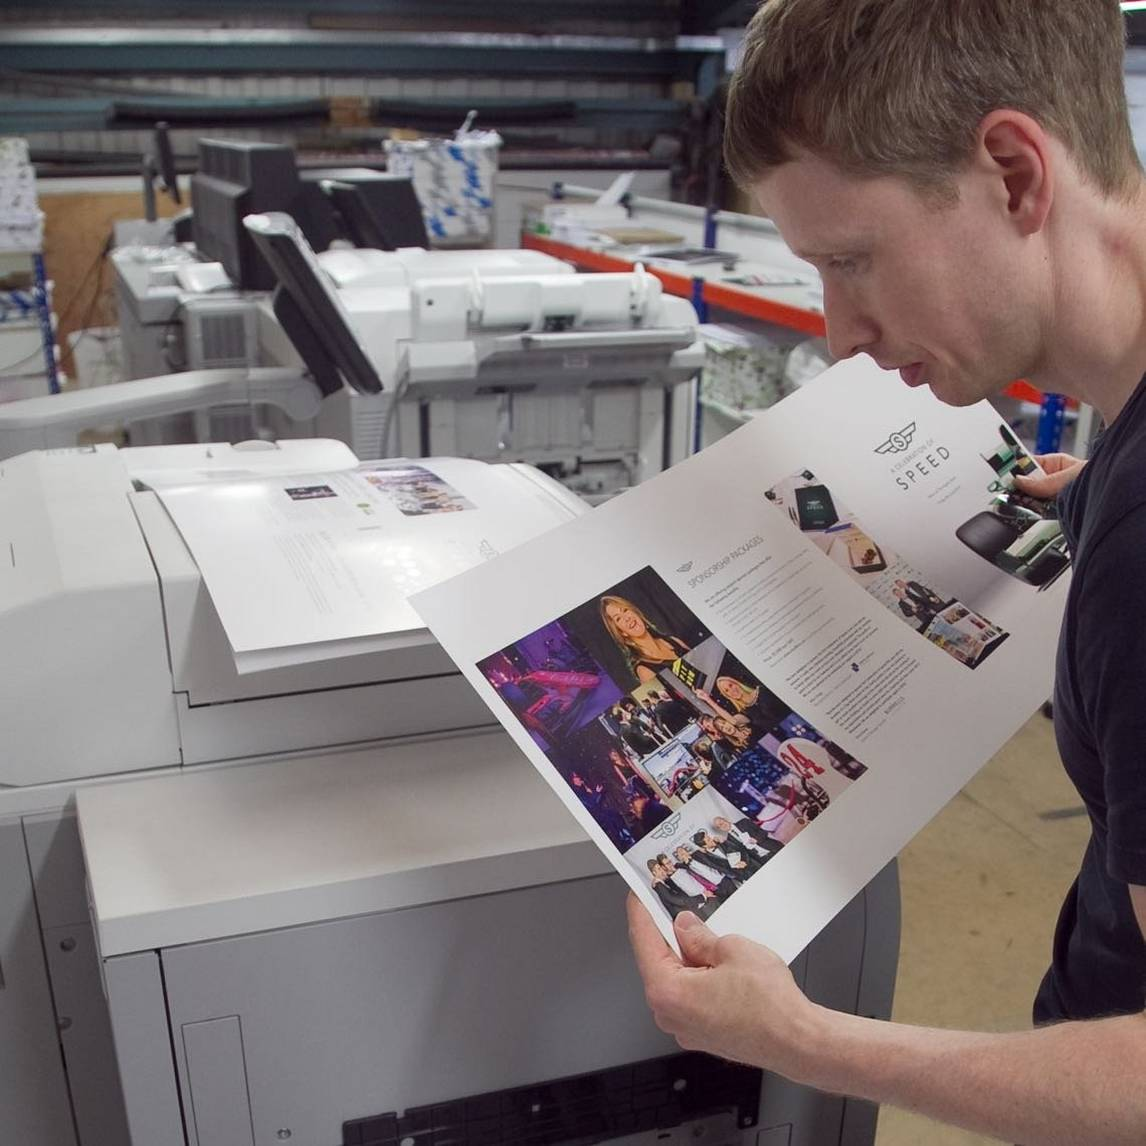 Man examines pages of photo prints from commercial printer